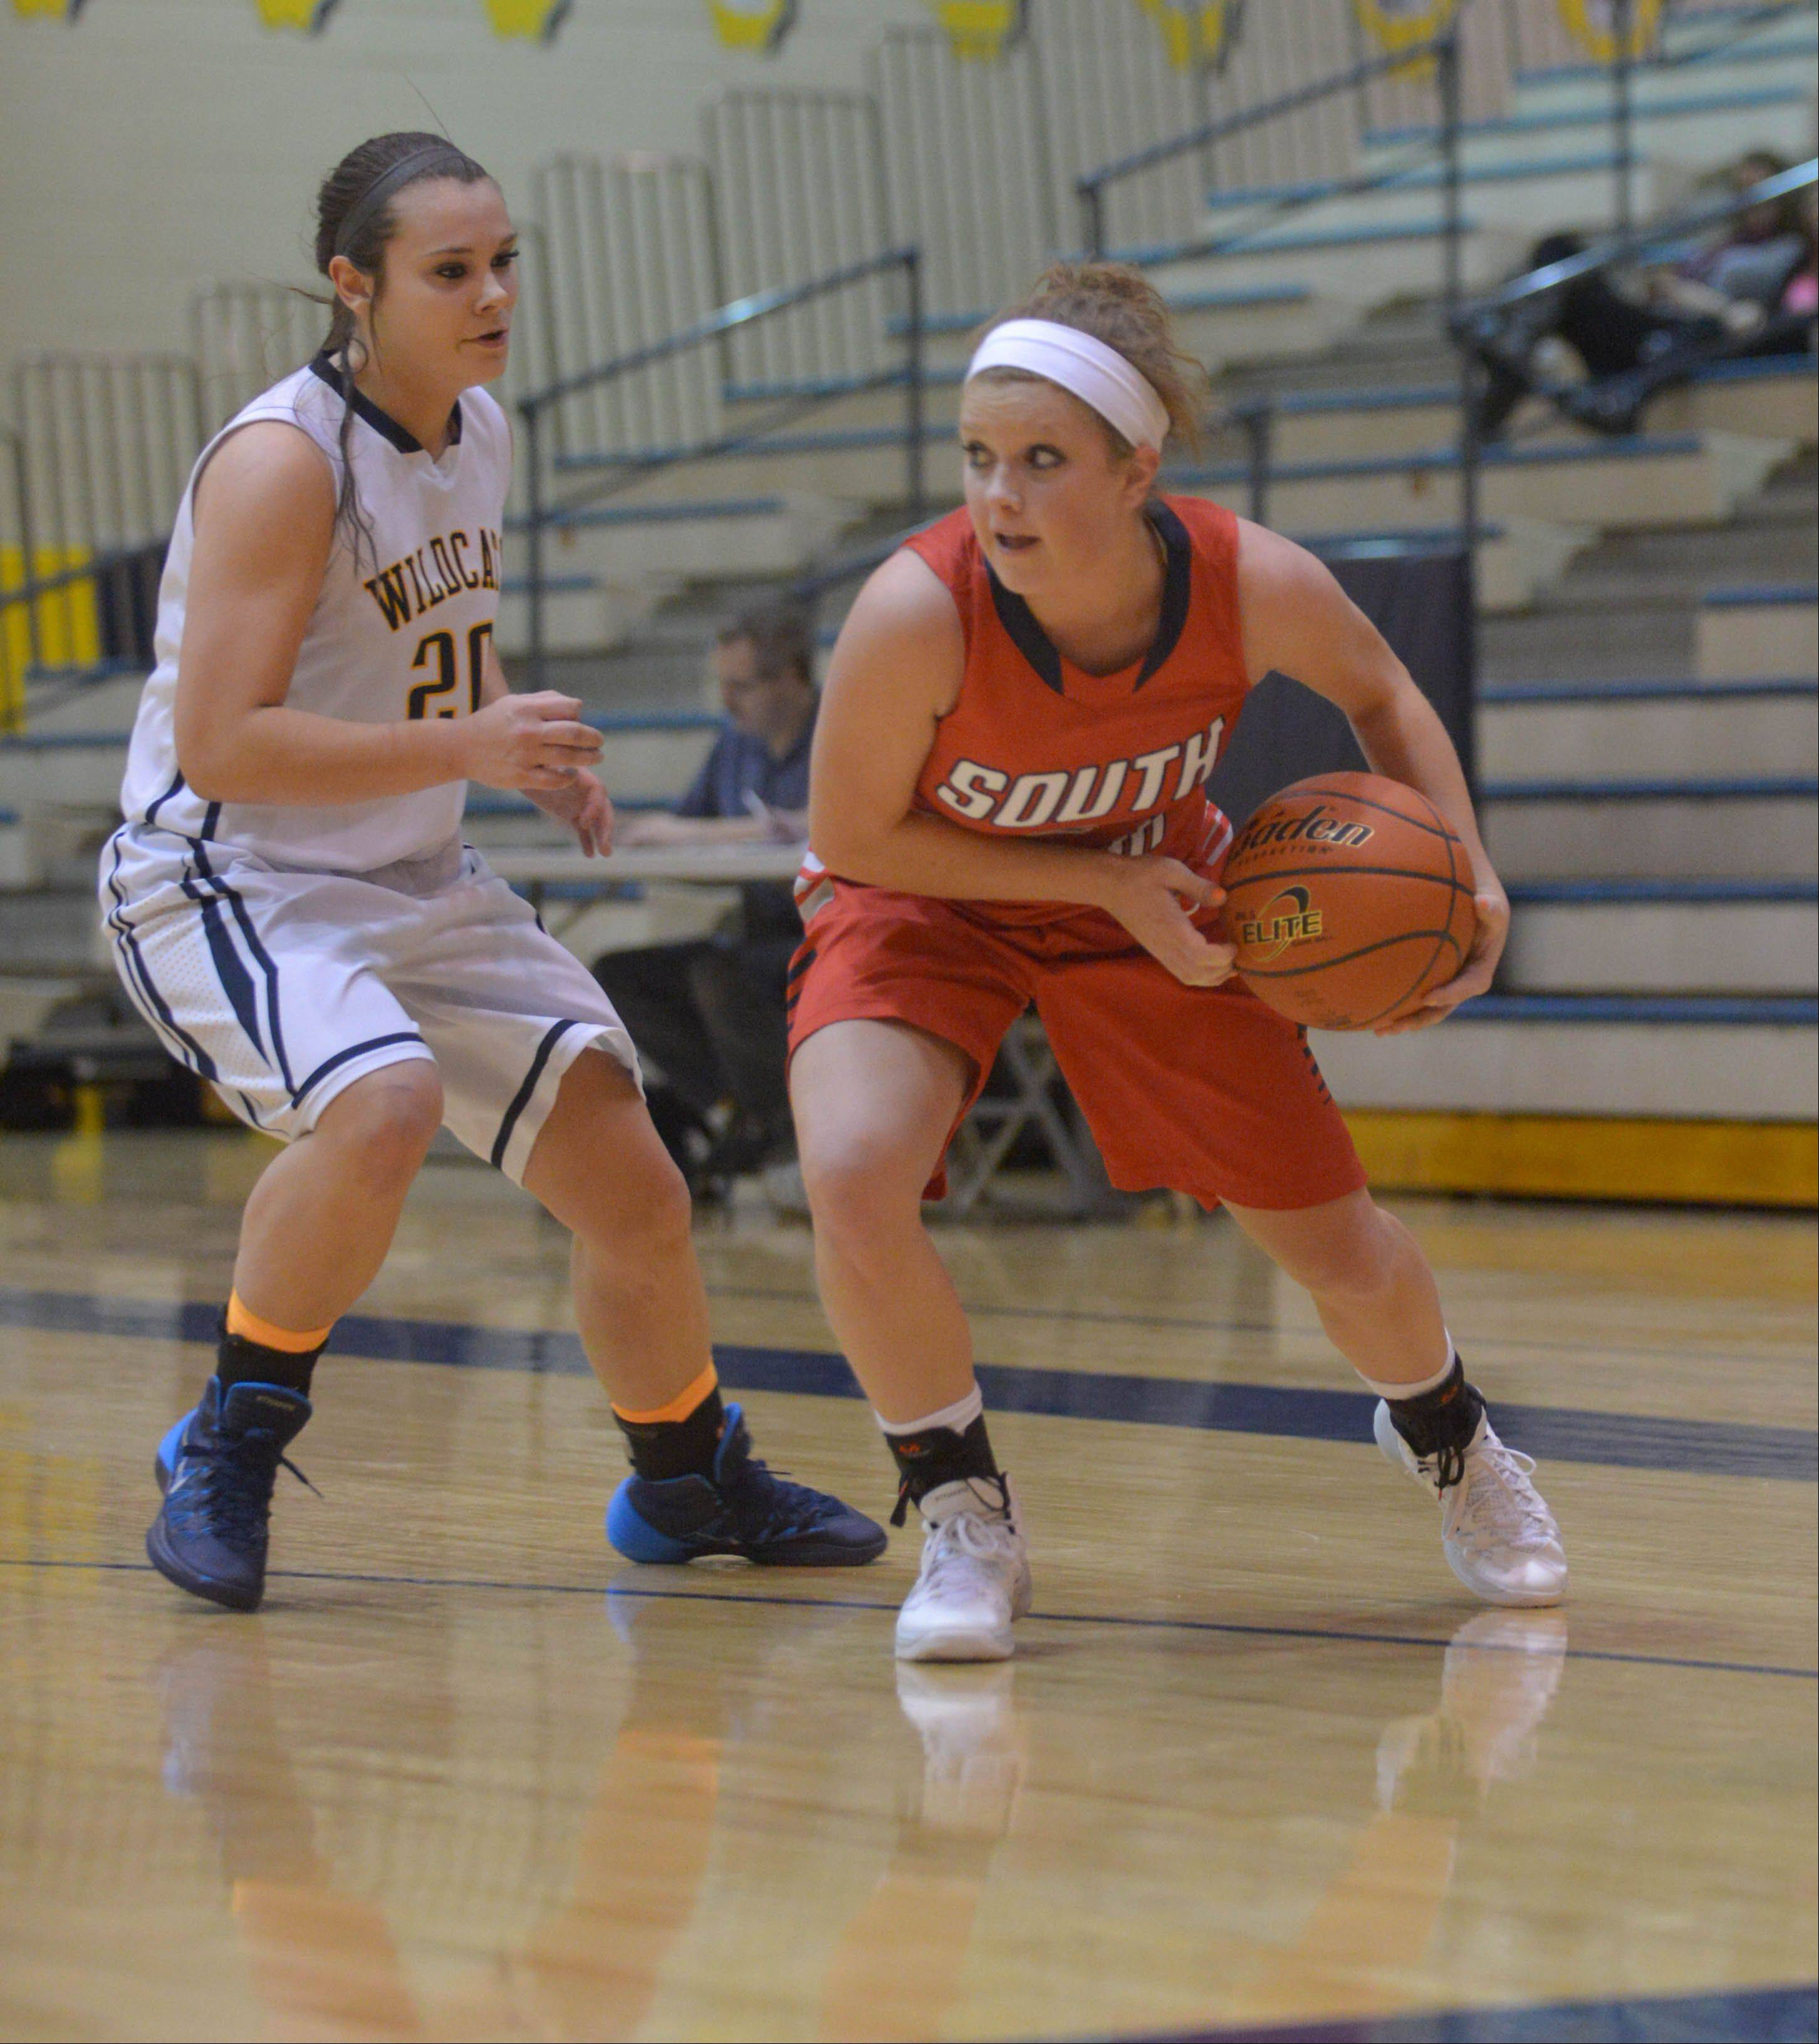 Niki Lazar of Neuqua Valley and Anna Tracy of South Elgin move with the ball.